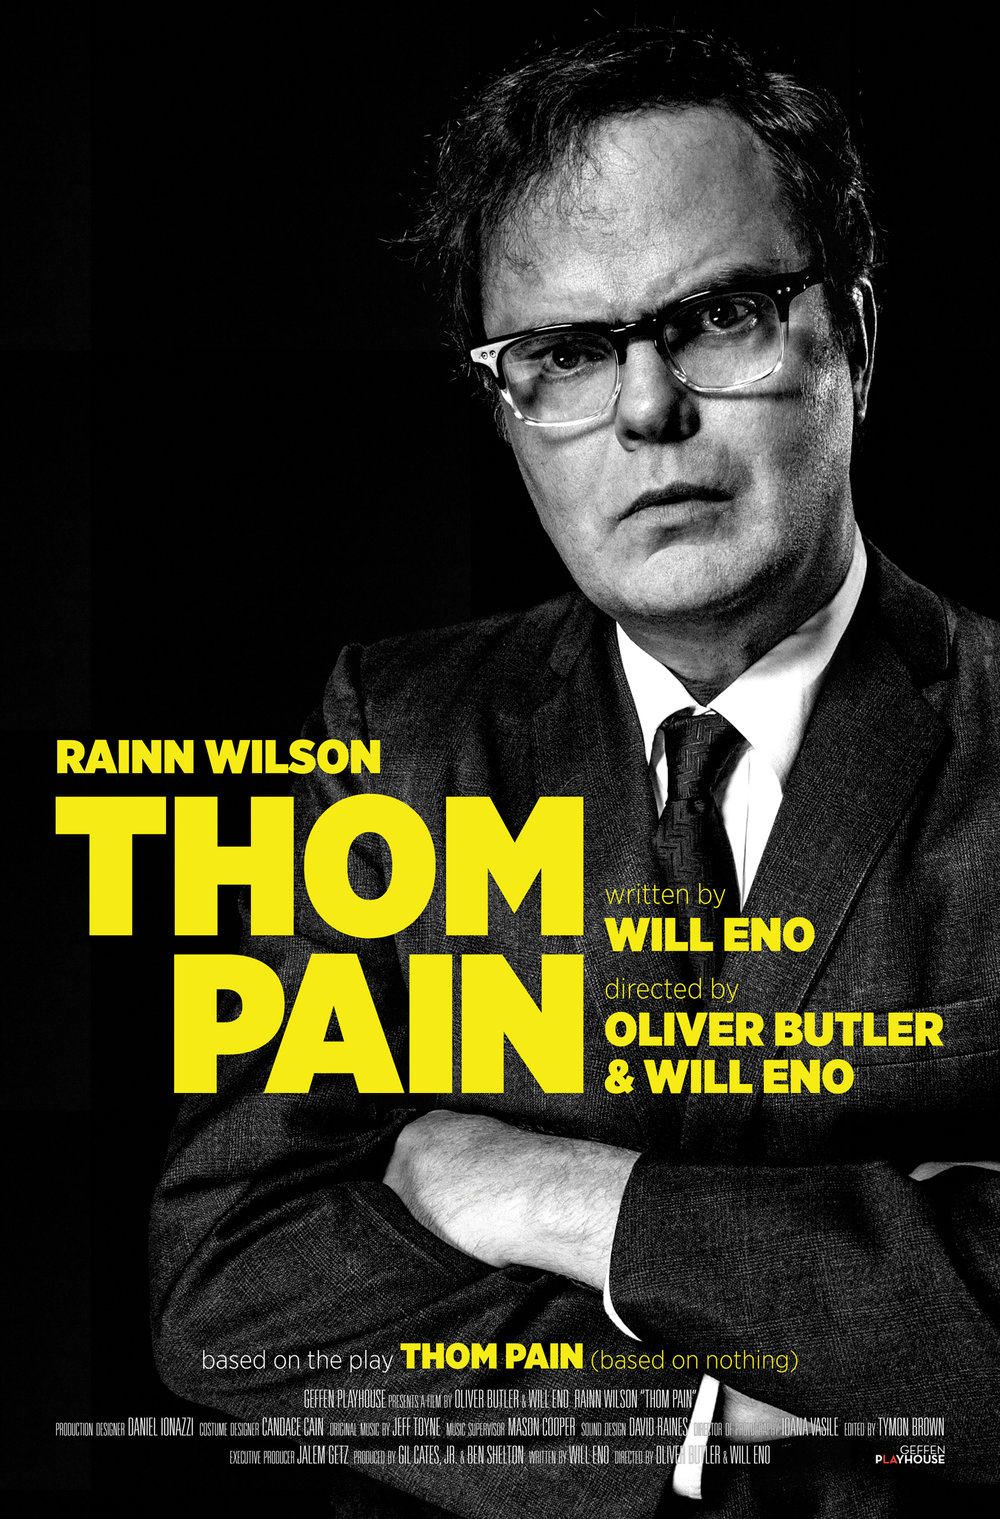 Special Event - screening& discussion with Rainn Wilson - Courtesy of Geffen Playhouse & Broadway HDThom Pain is just like you, except worse. One night, he finds himself on a stage, in the dark, in a theatre. In the audience are people who, just like him, were born and will die. Thom is going to try to make sense of it all. He's going to try to save his life, to save their life, to save your life - in that order. A camera crew captures the night, as various forces align to produce a reckless.June 11th, 7pmBjorklundenFestival or Premium Pass Required